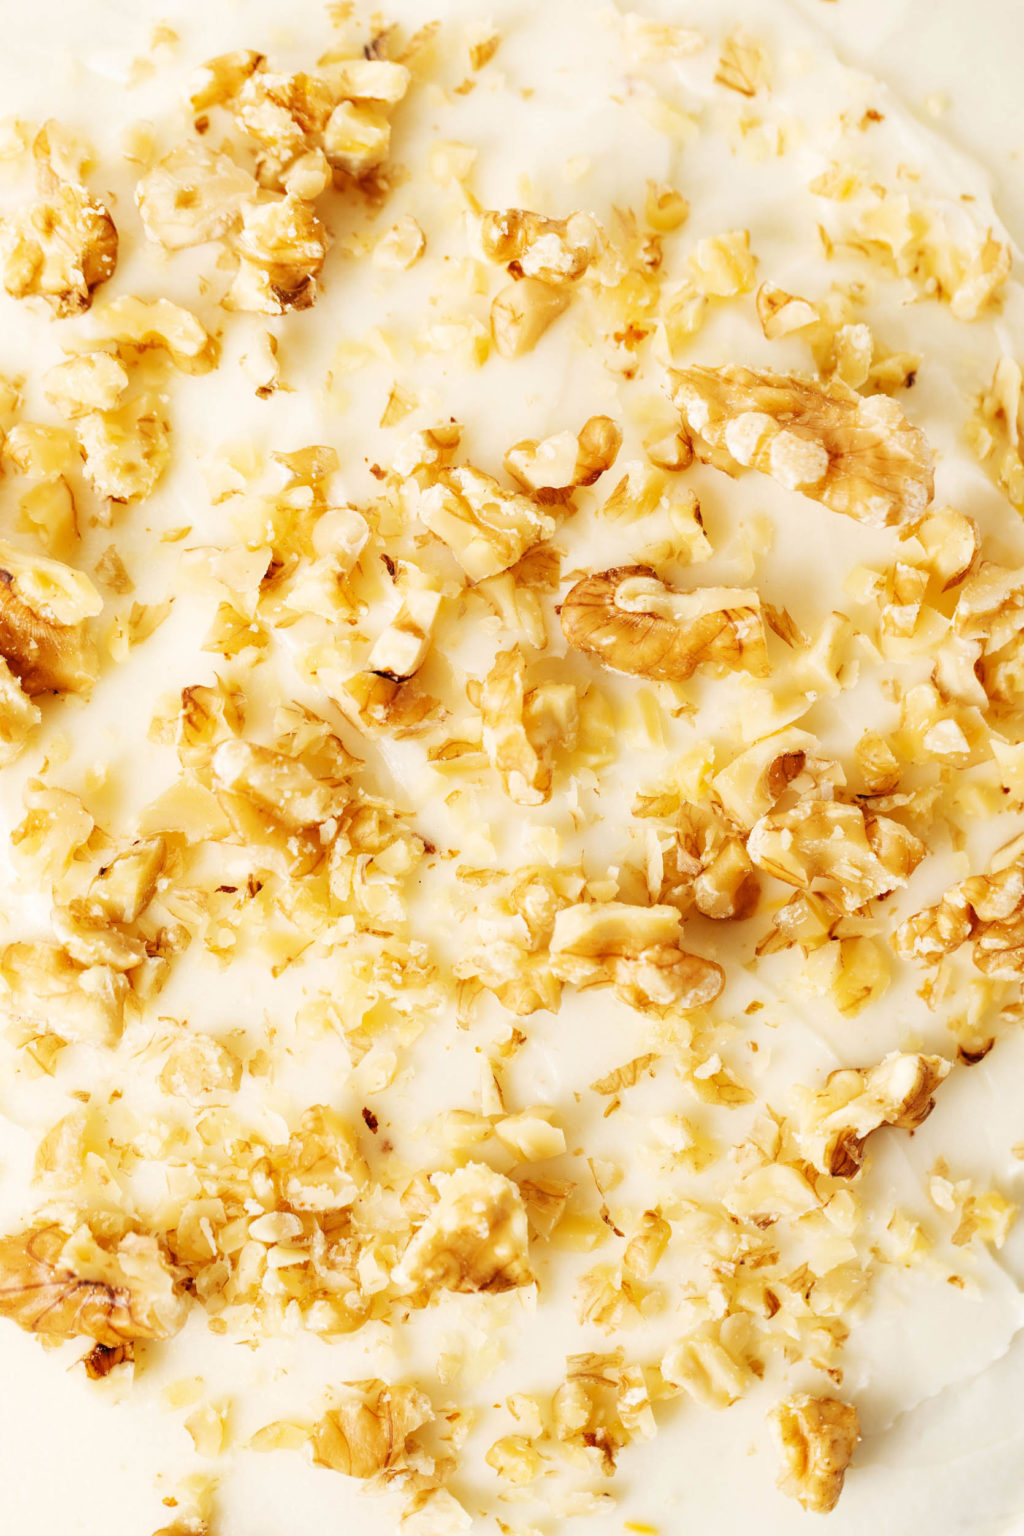 The top of a frosted cake, which has been garnished with walnuts.